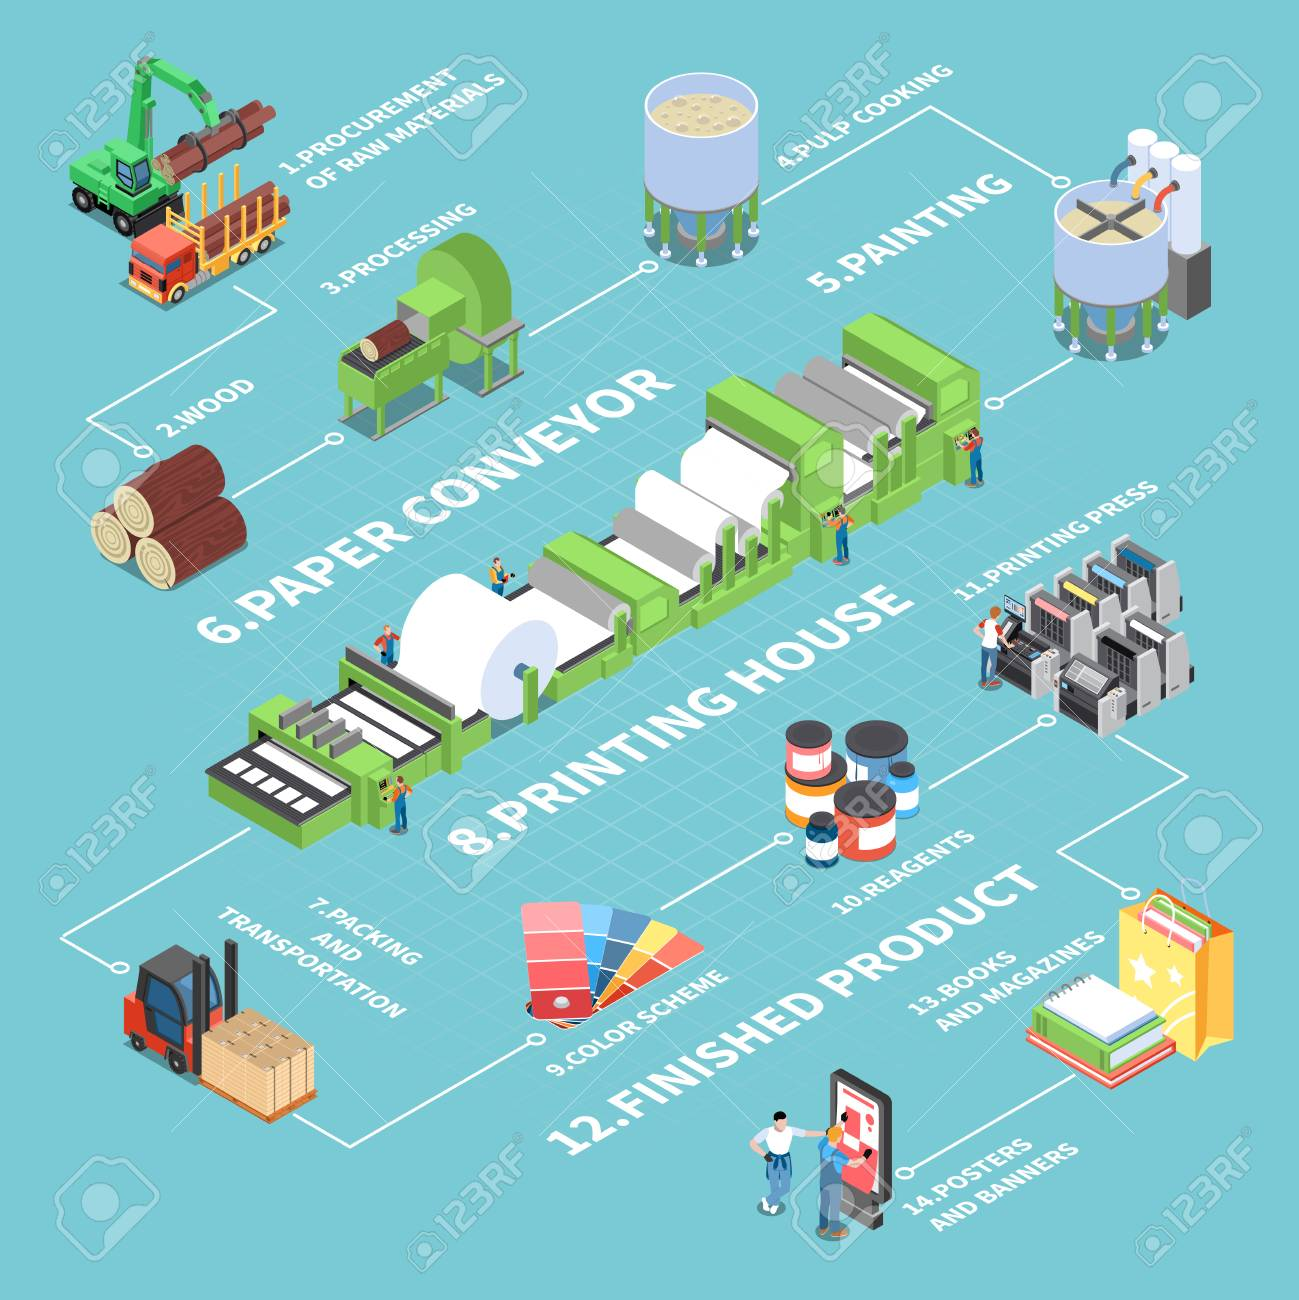 Paper production flowchart with paper conveyor symbols isometric vector illustration - 128160715